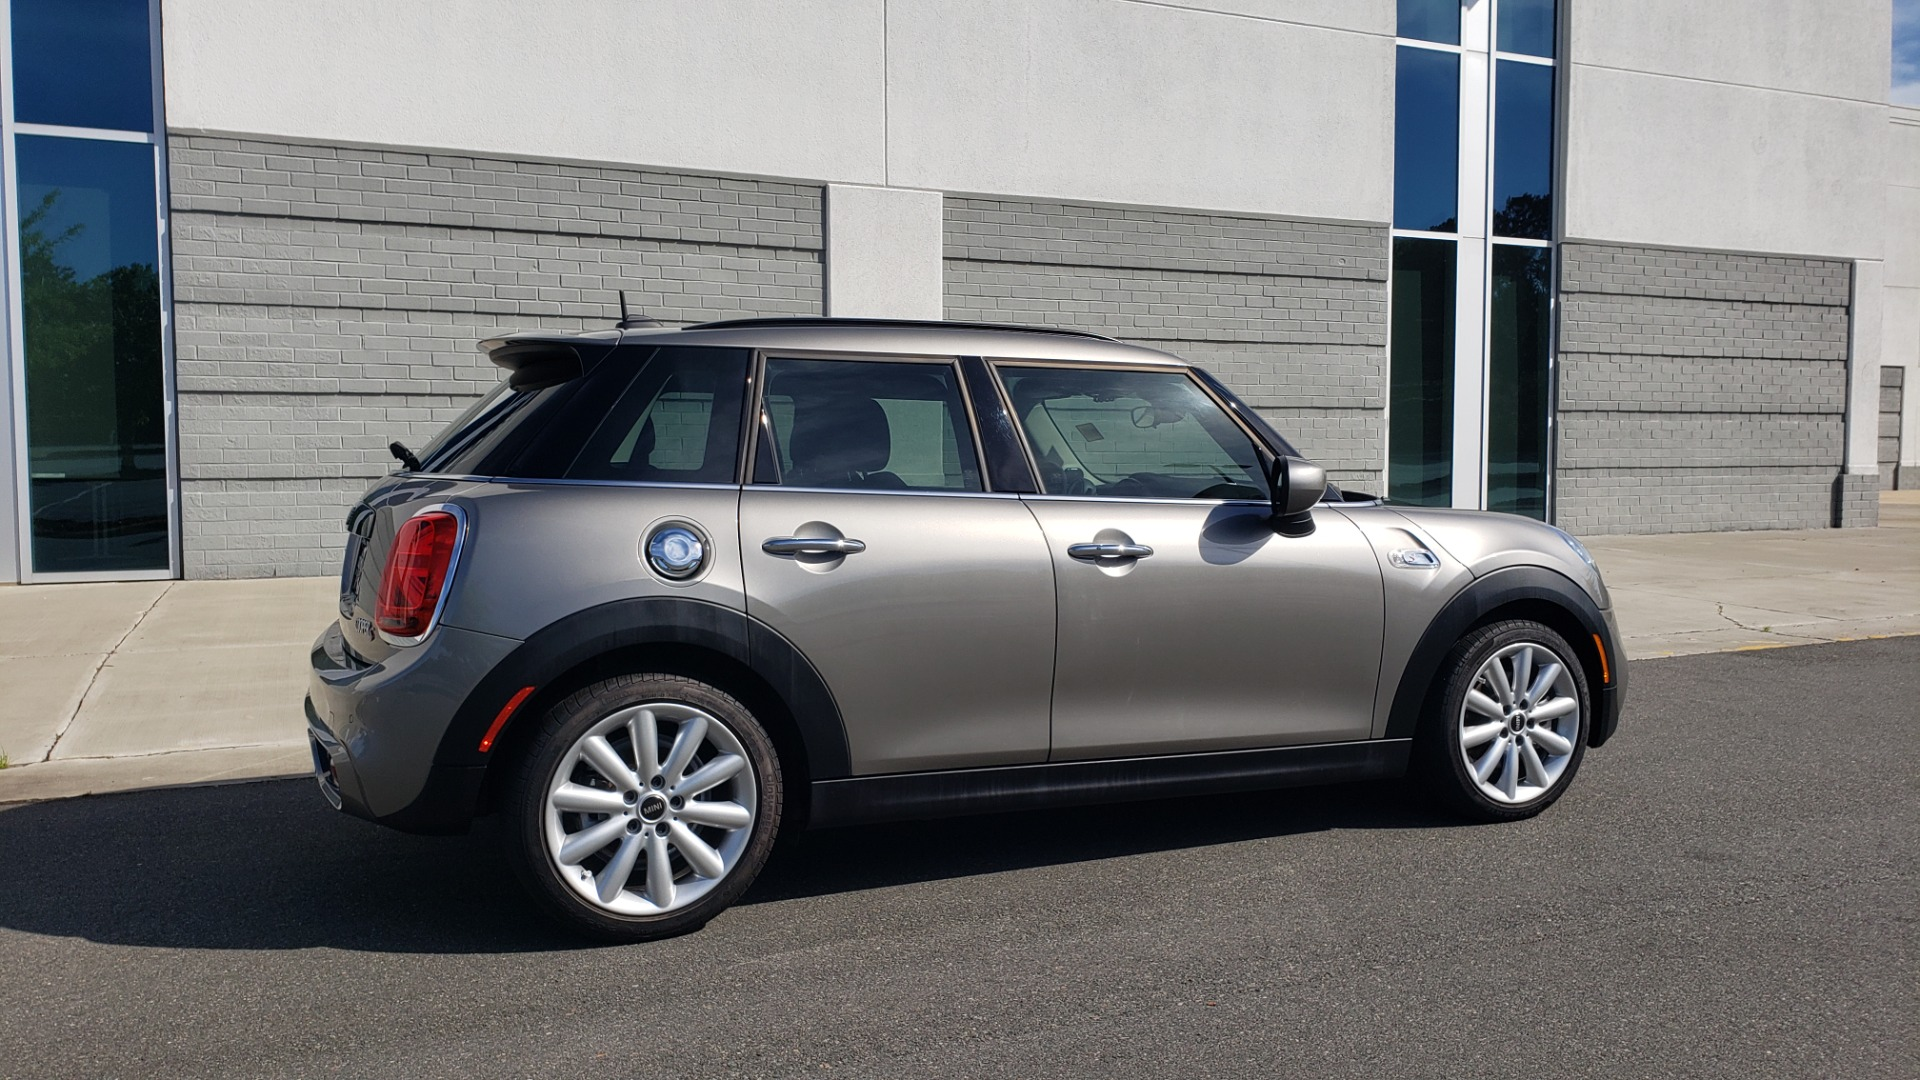 Used 2020 MINI HARDTOP 4 DOOR COOPER S / NAV / SUNROOF / AUTO / H/K SND / REARVIEW for sale $28,495 at Formula Imports in Charlotte NC 28227 7